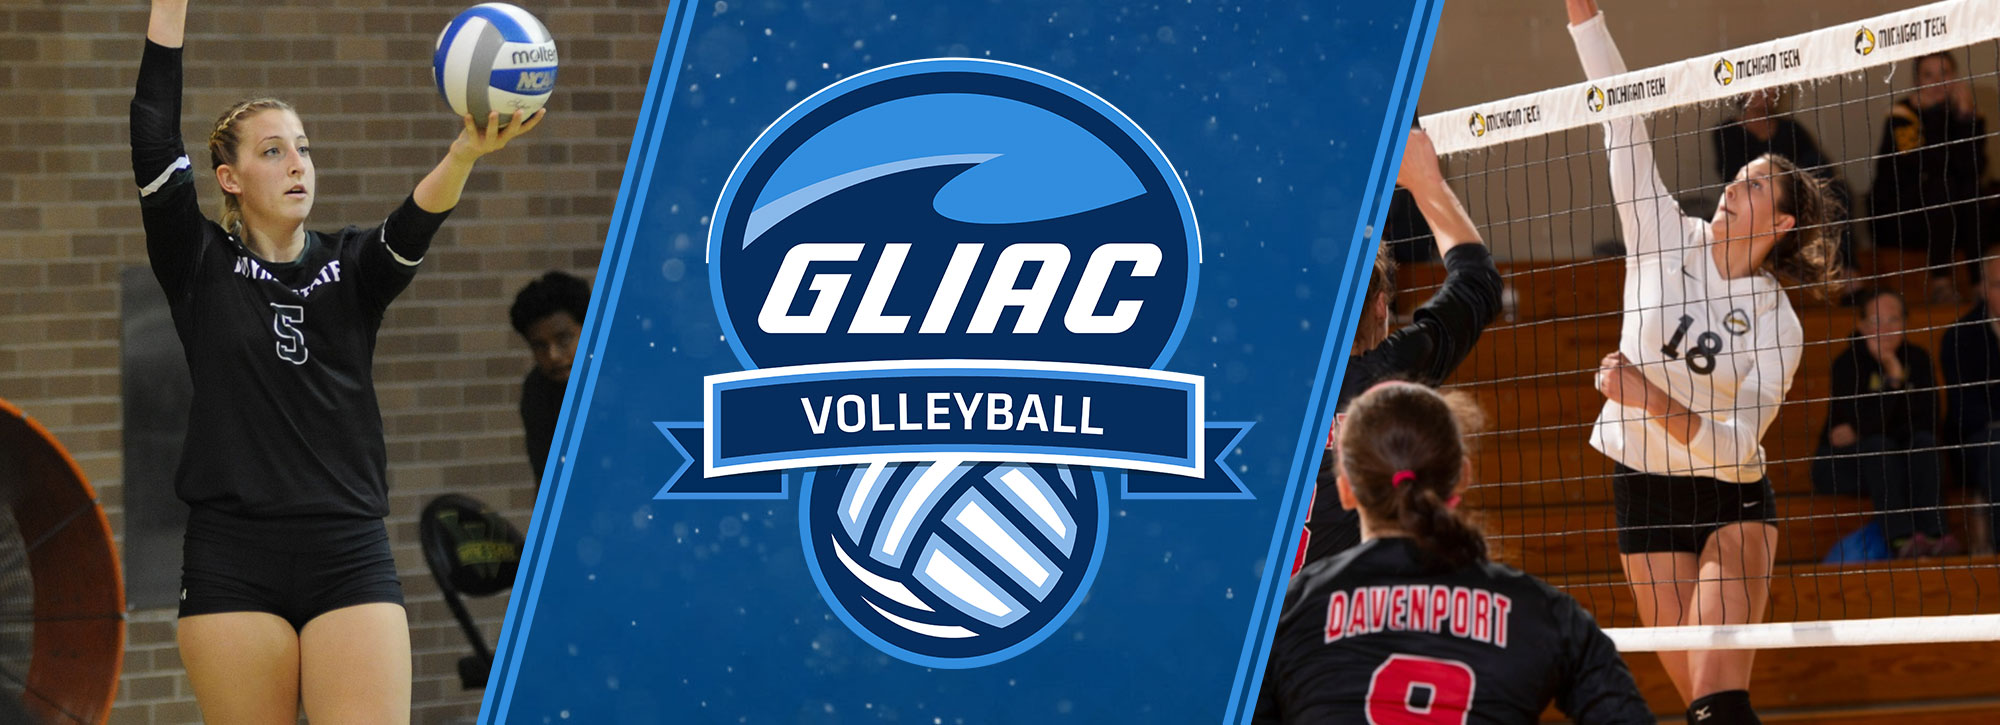 Michigan Tech's Sherman, Wayne State's Richardson Collect GLIAC Volleyball Player of the Week Accolades